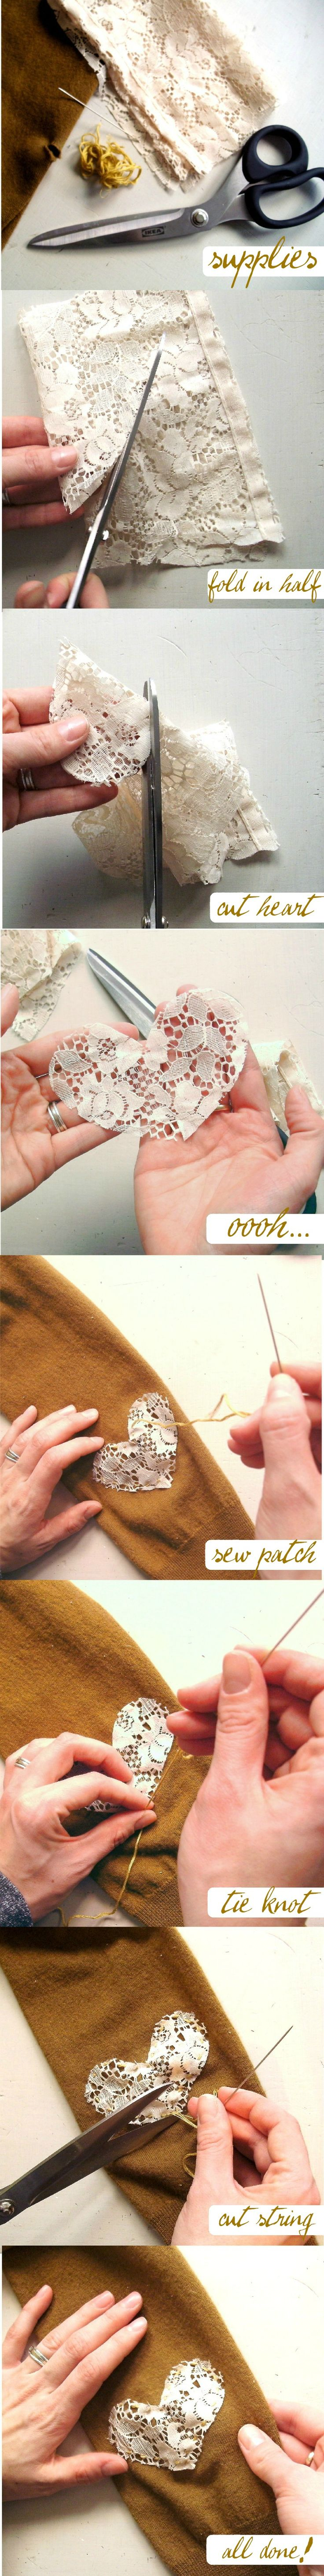 #DIY Lacy Heart Elbow Patch